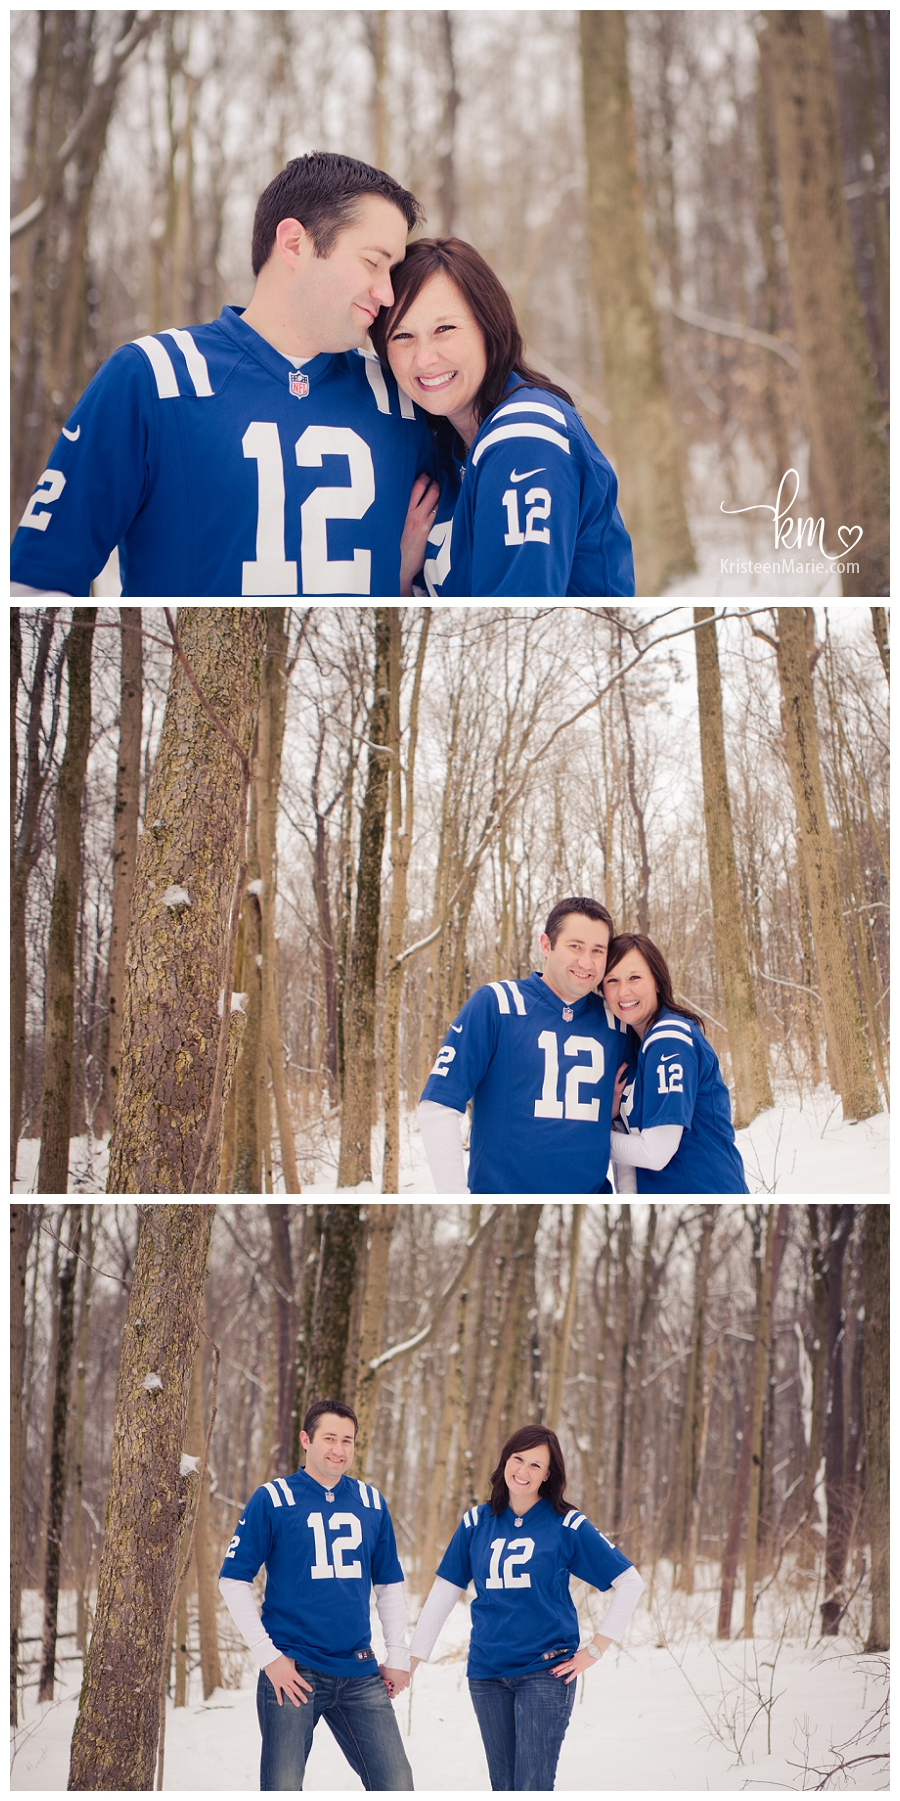 Couple in Colts jersey